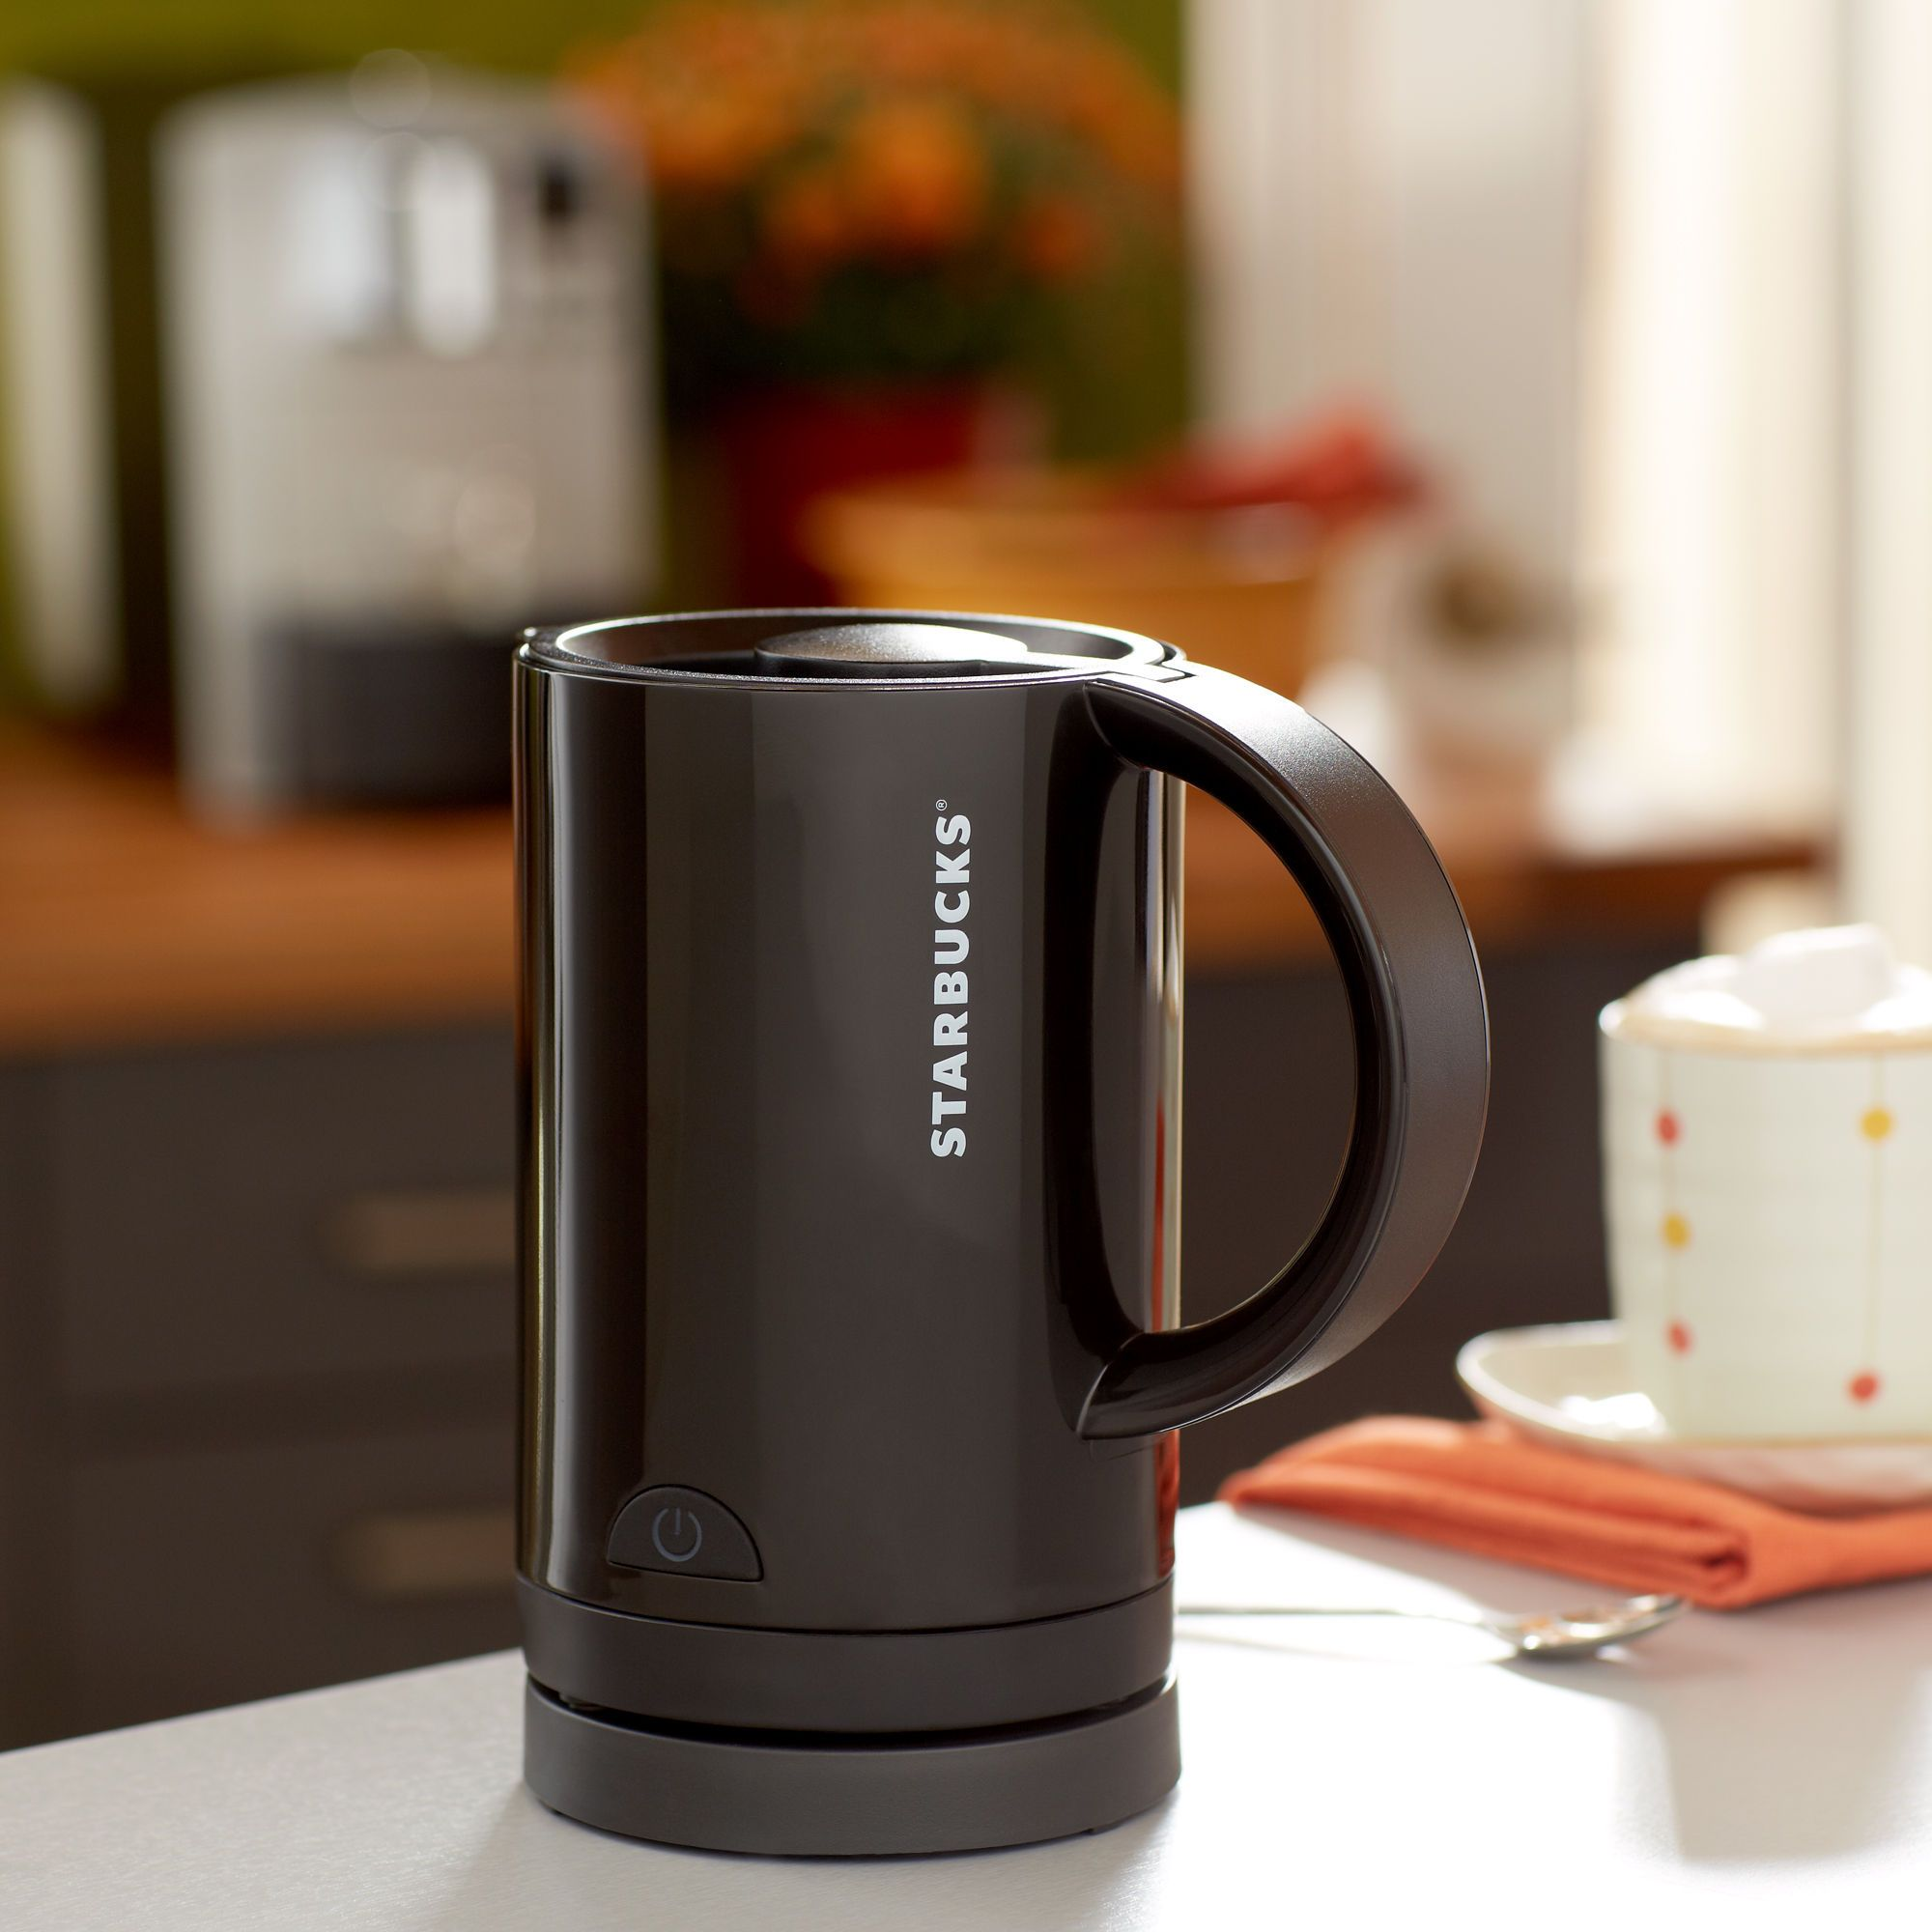 Starbucks® Electric Frother! I NEED THIS to go along with